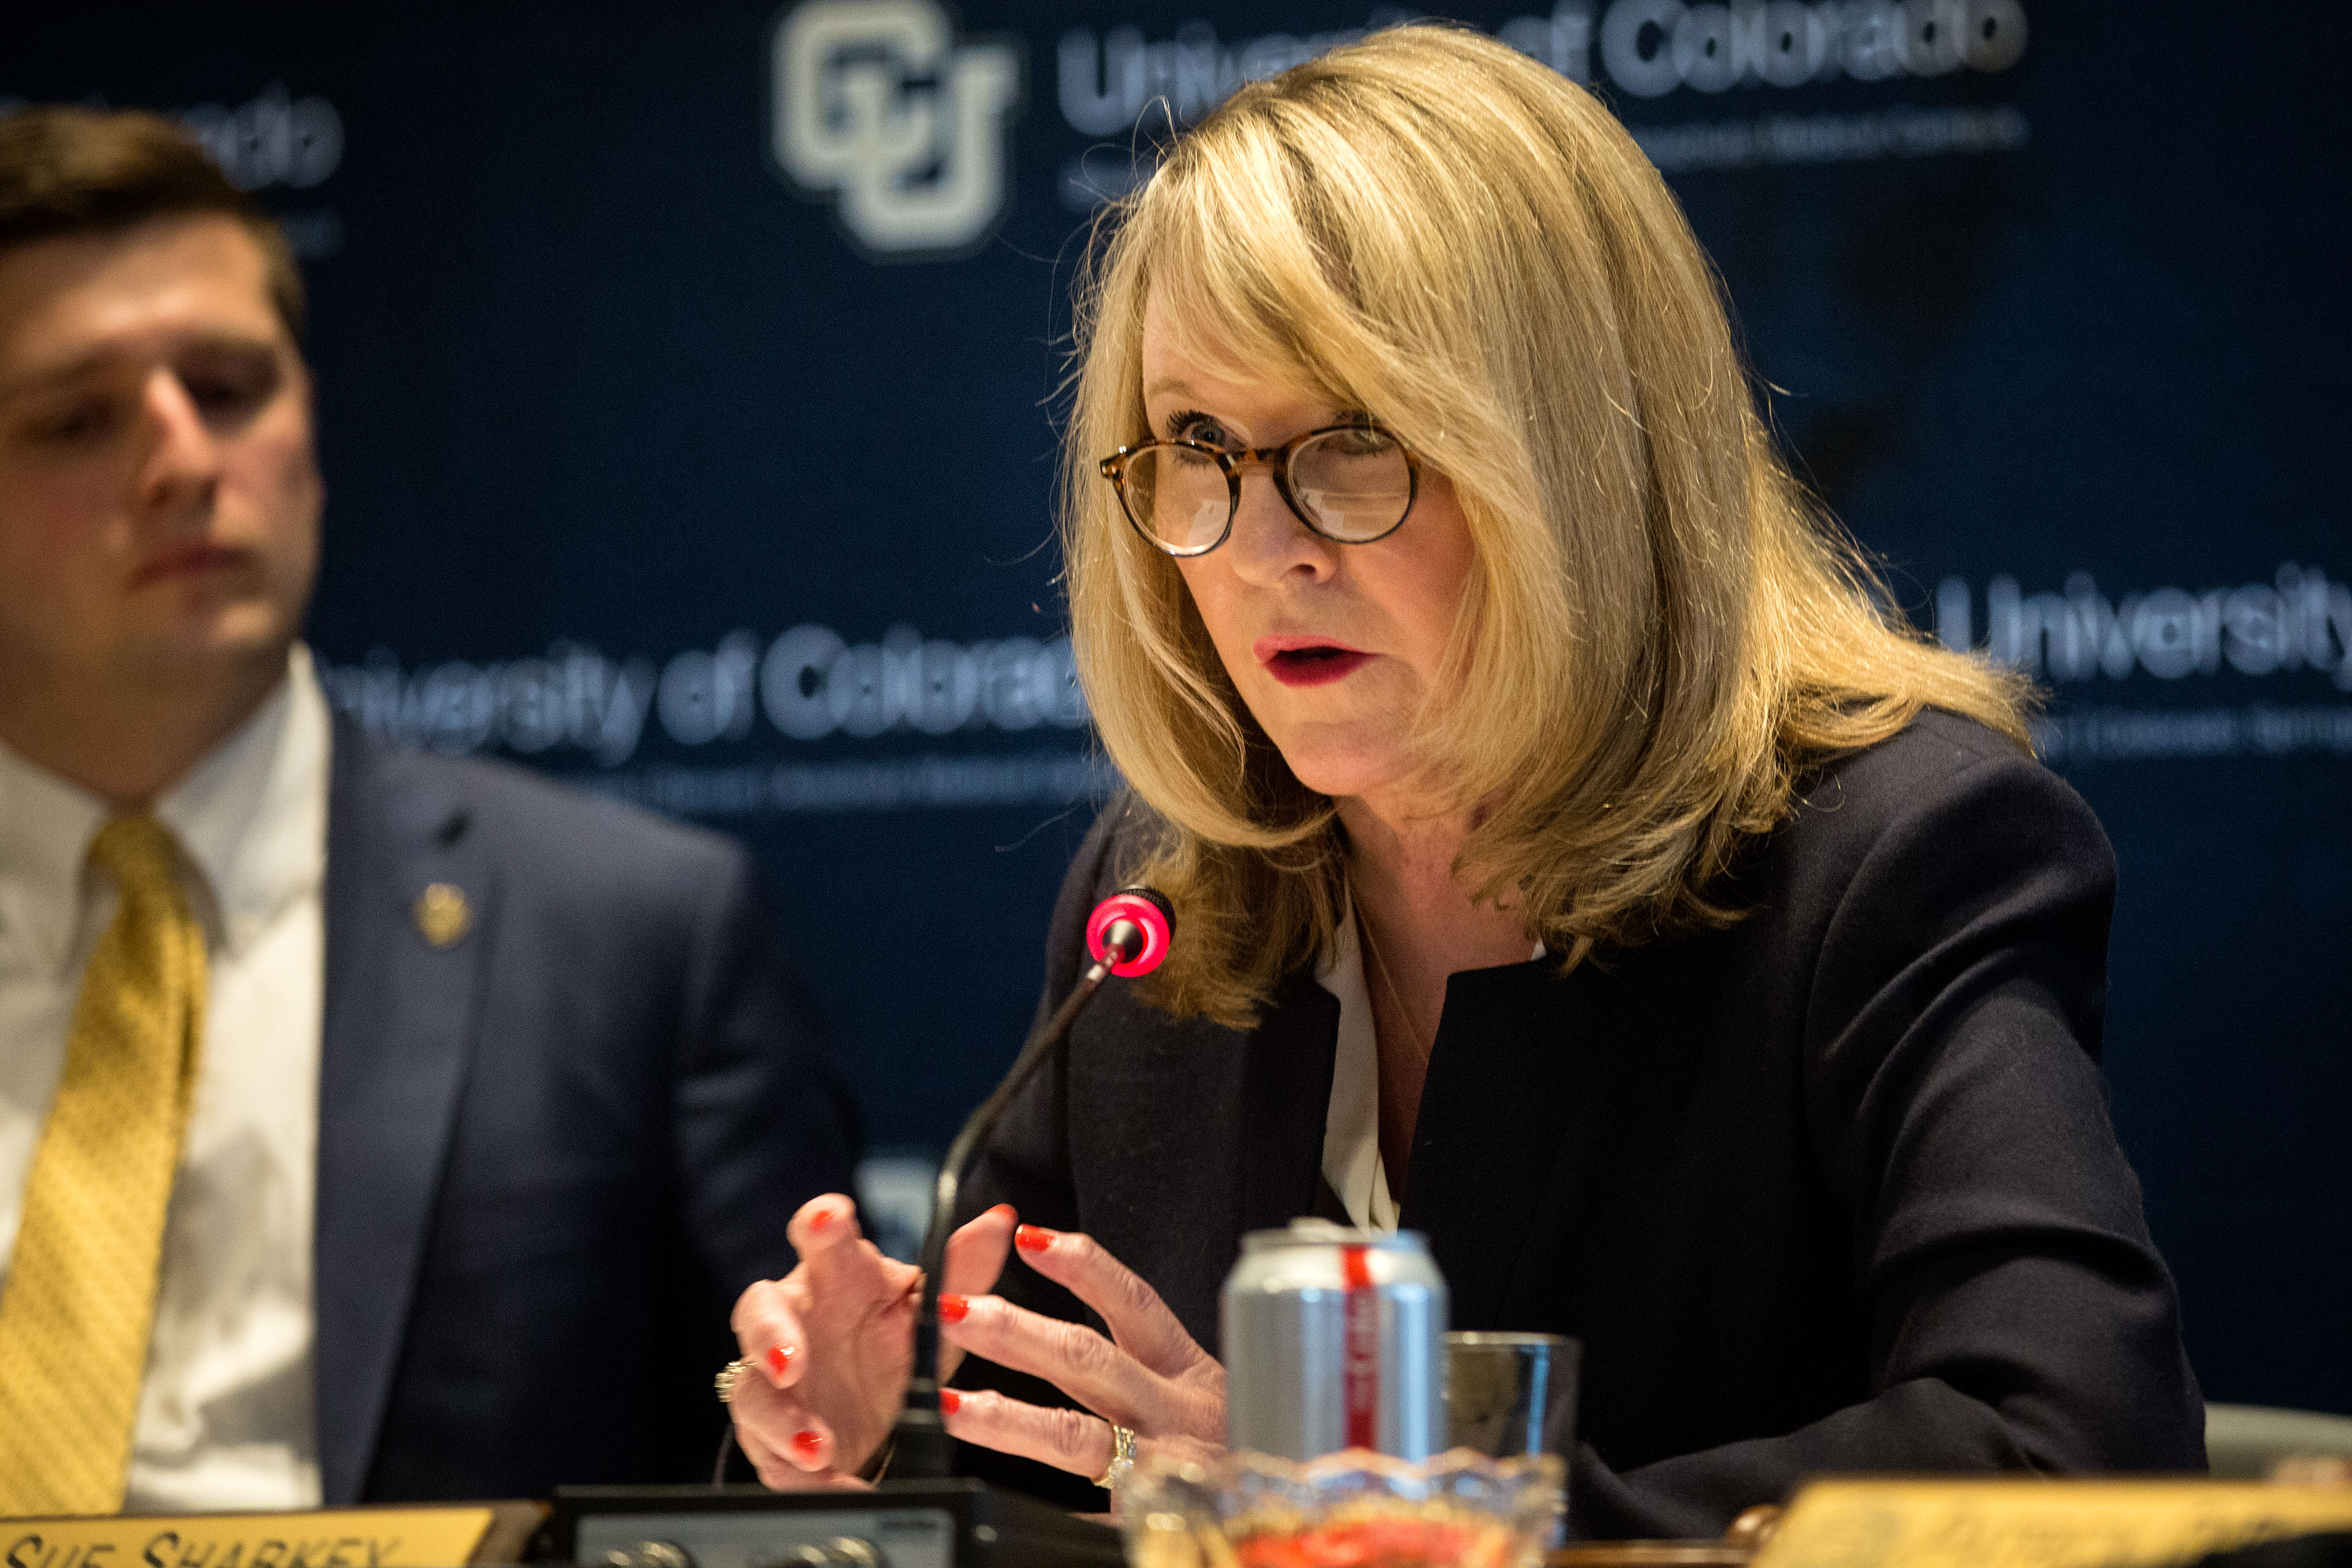 Photo: CU Regent Chair Sue Sharkey HV 05022019